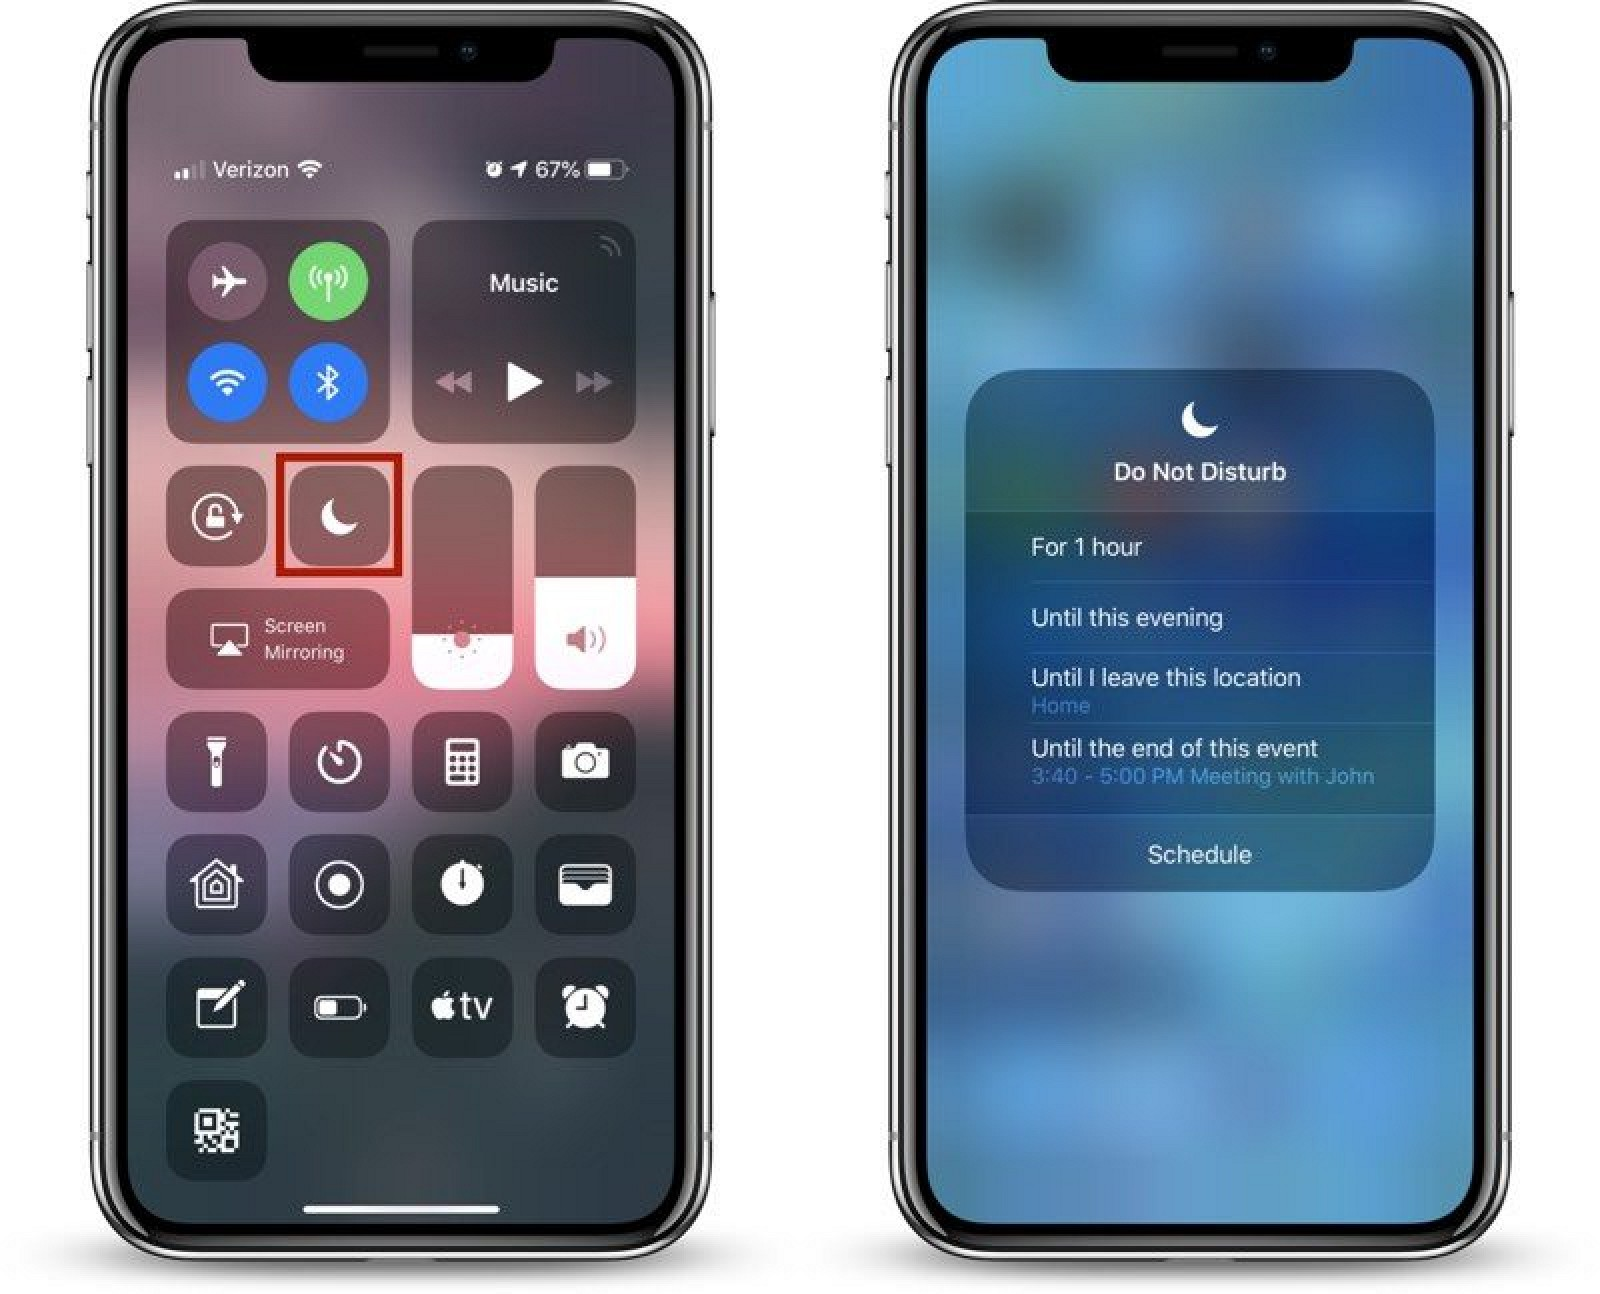 How to Use iOS 12's New Do Not Disturb Options - MacRumors